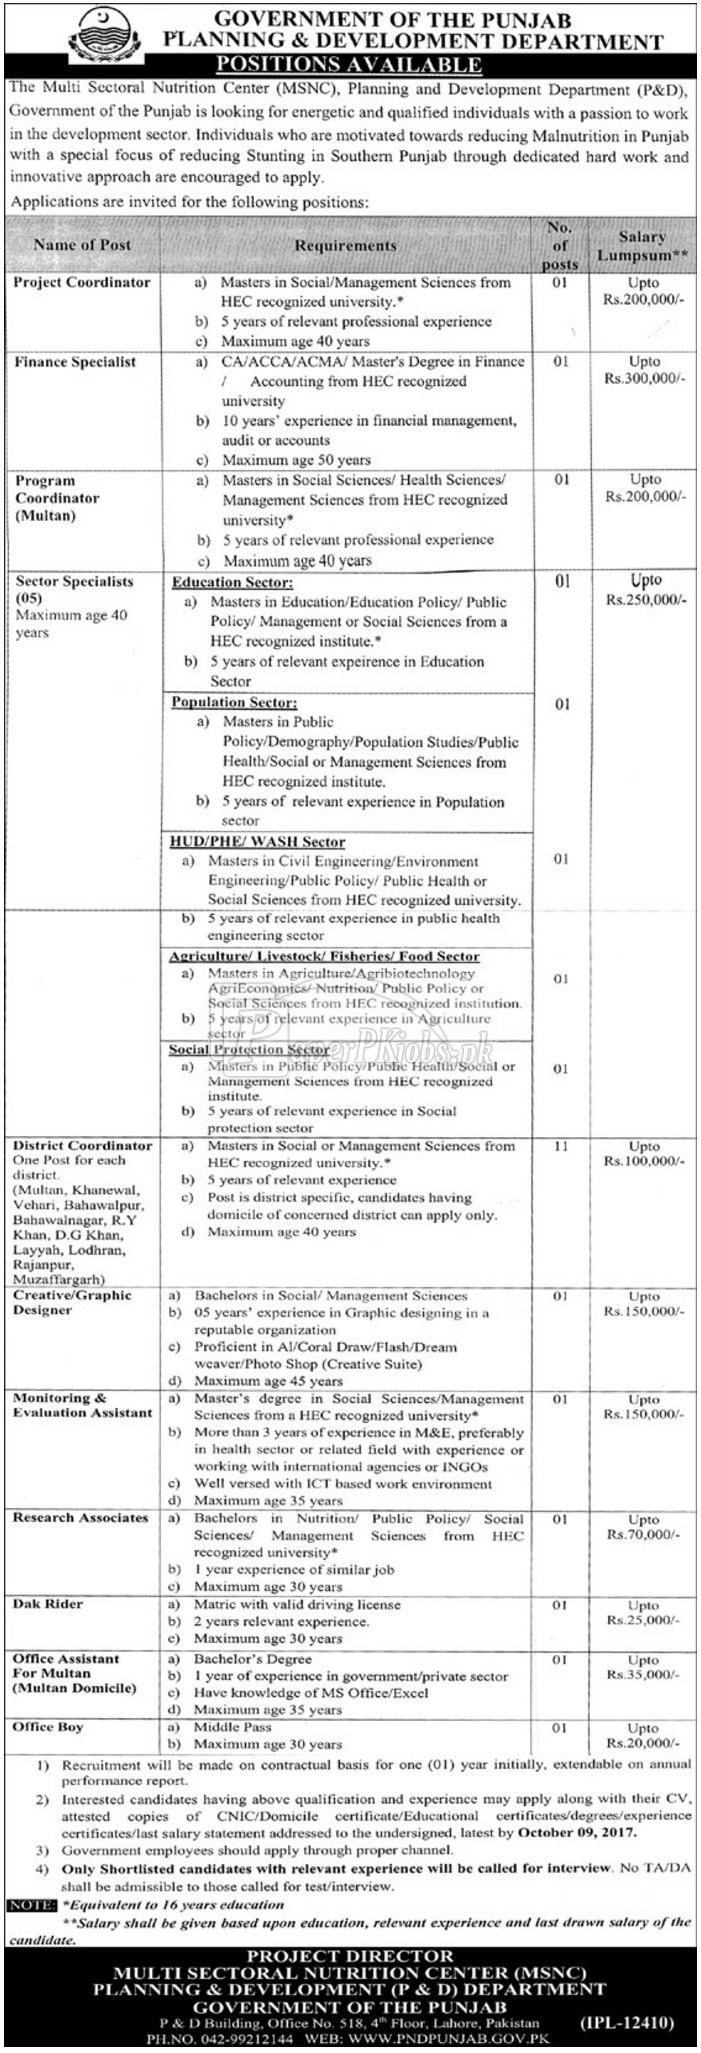 Planning & Development P&D Department Government of Punjab Jobs 2017